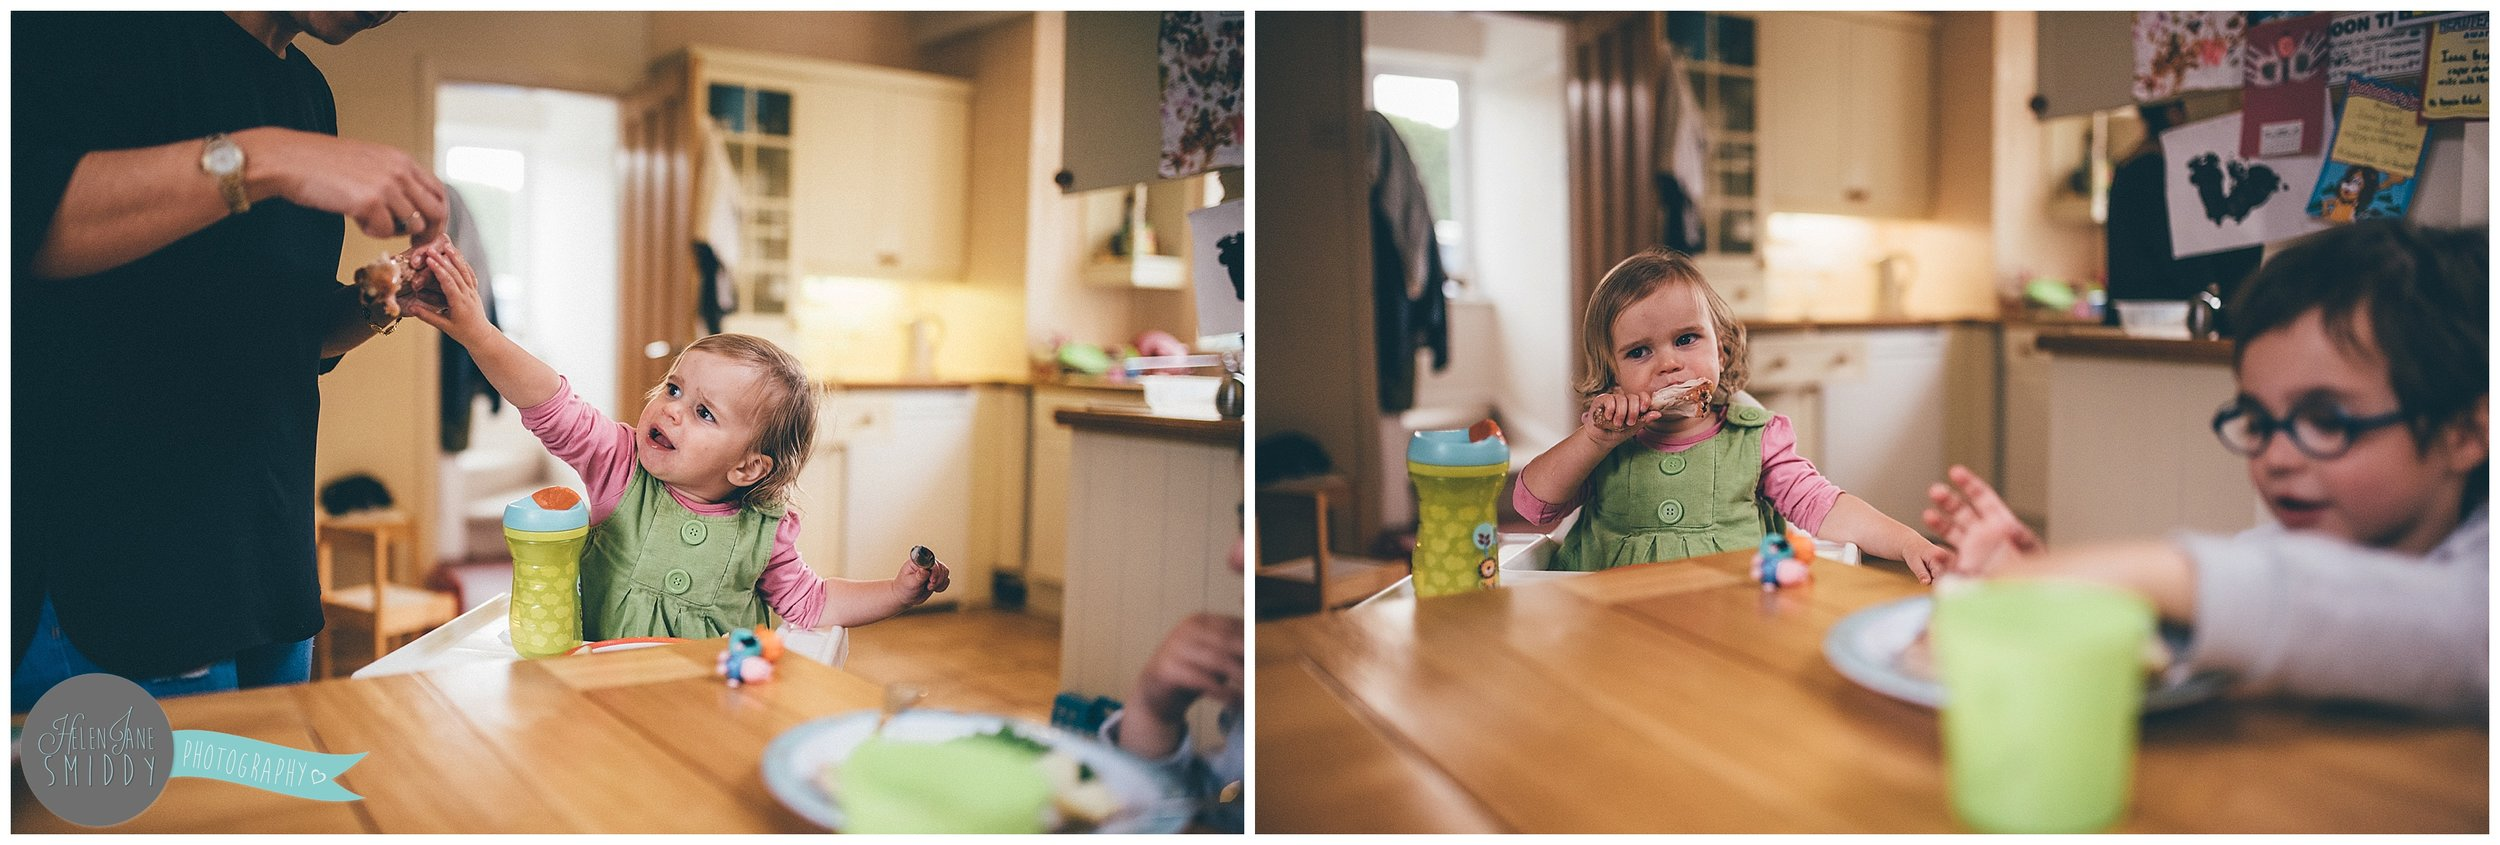 Dinner time in the Frodsham family home during an A Day In The Life photoshoot in Cheshire.